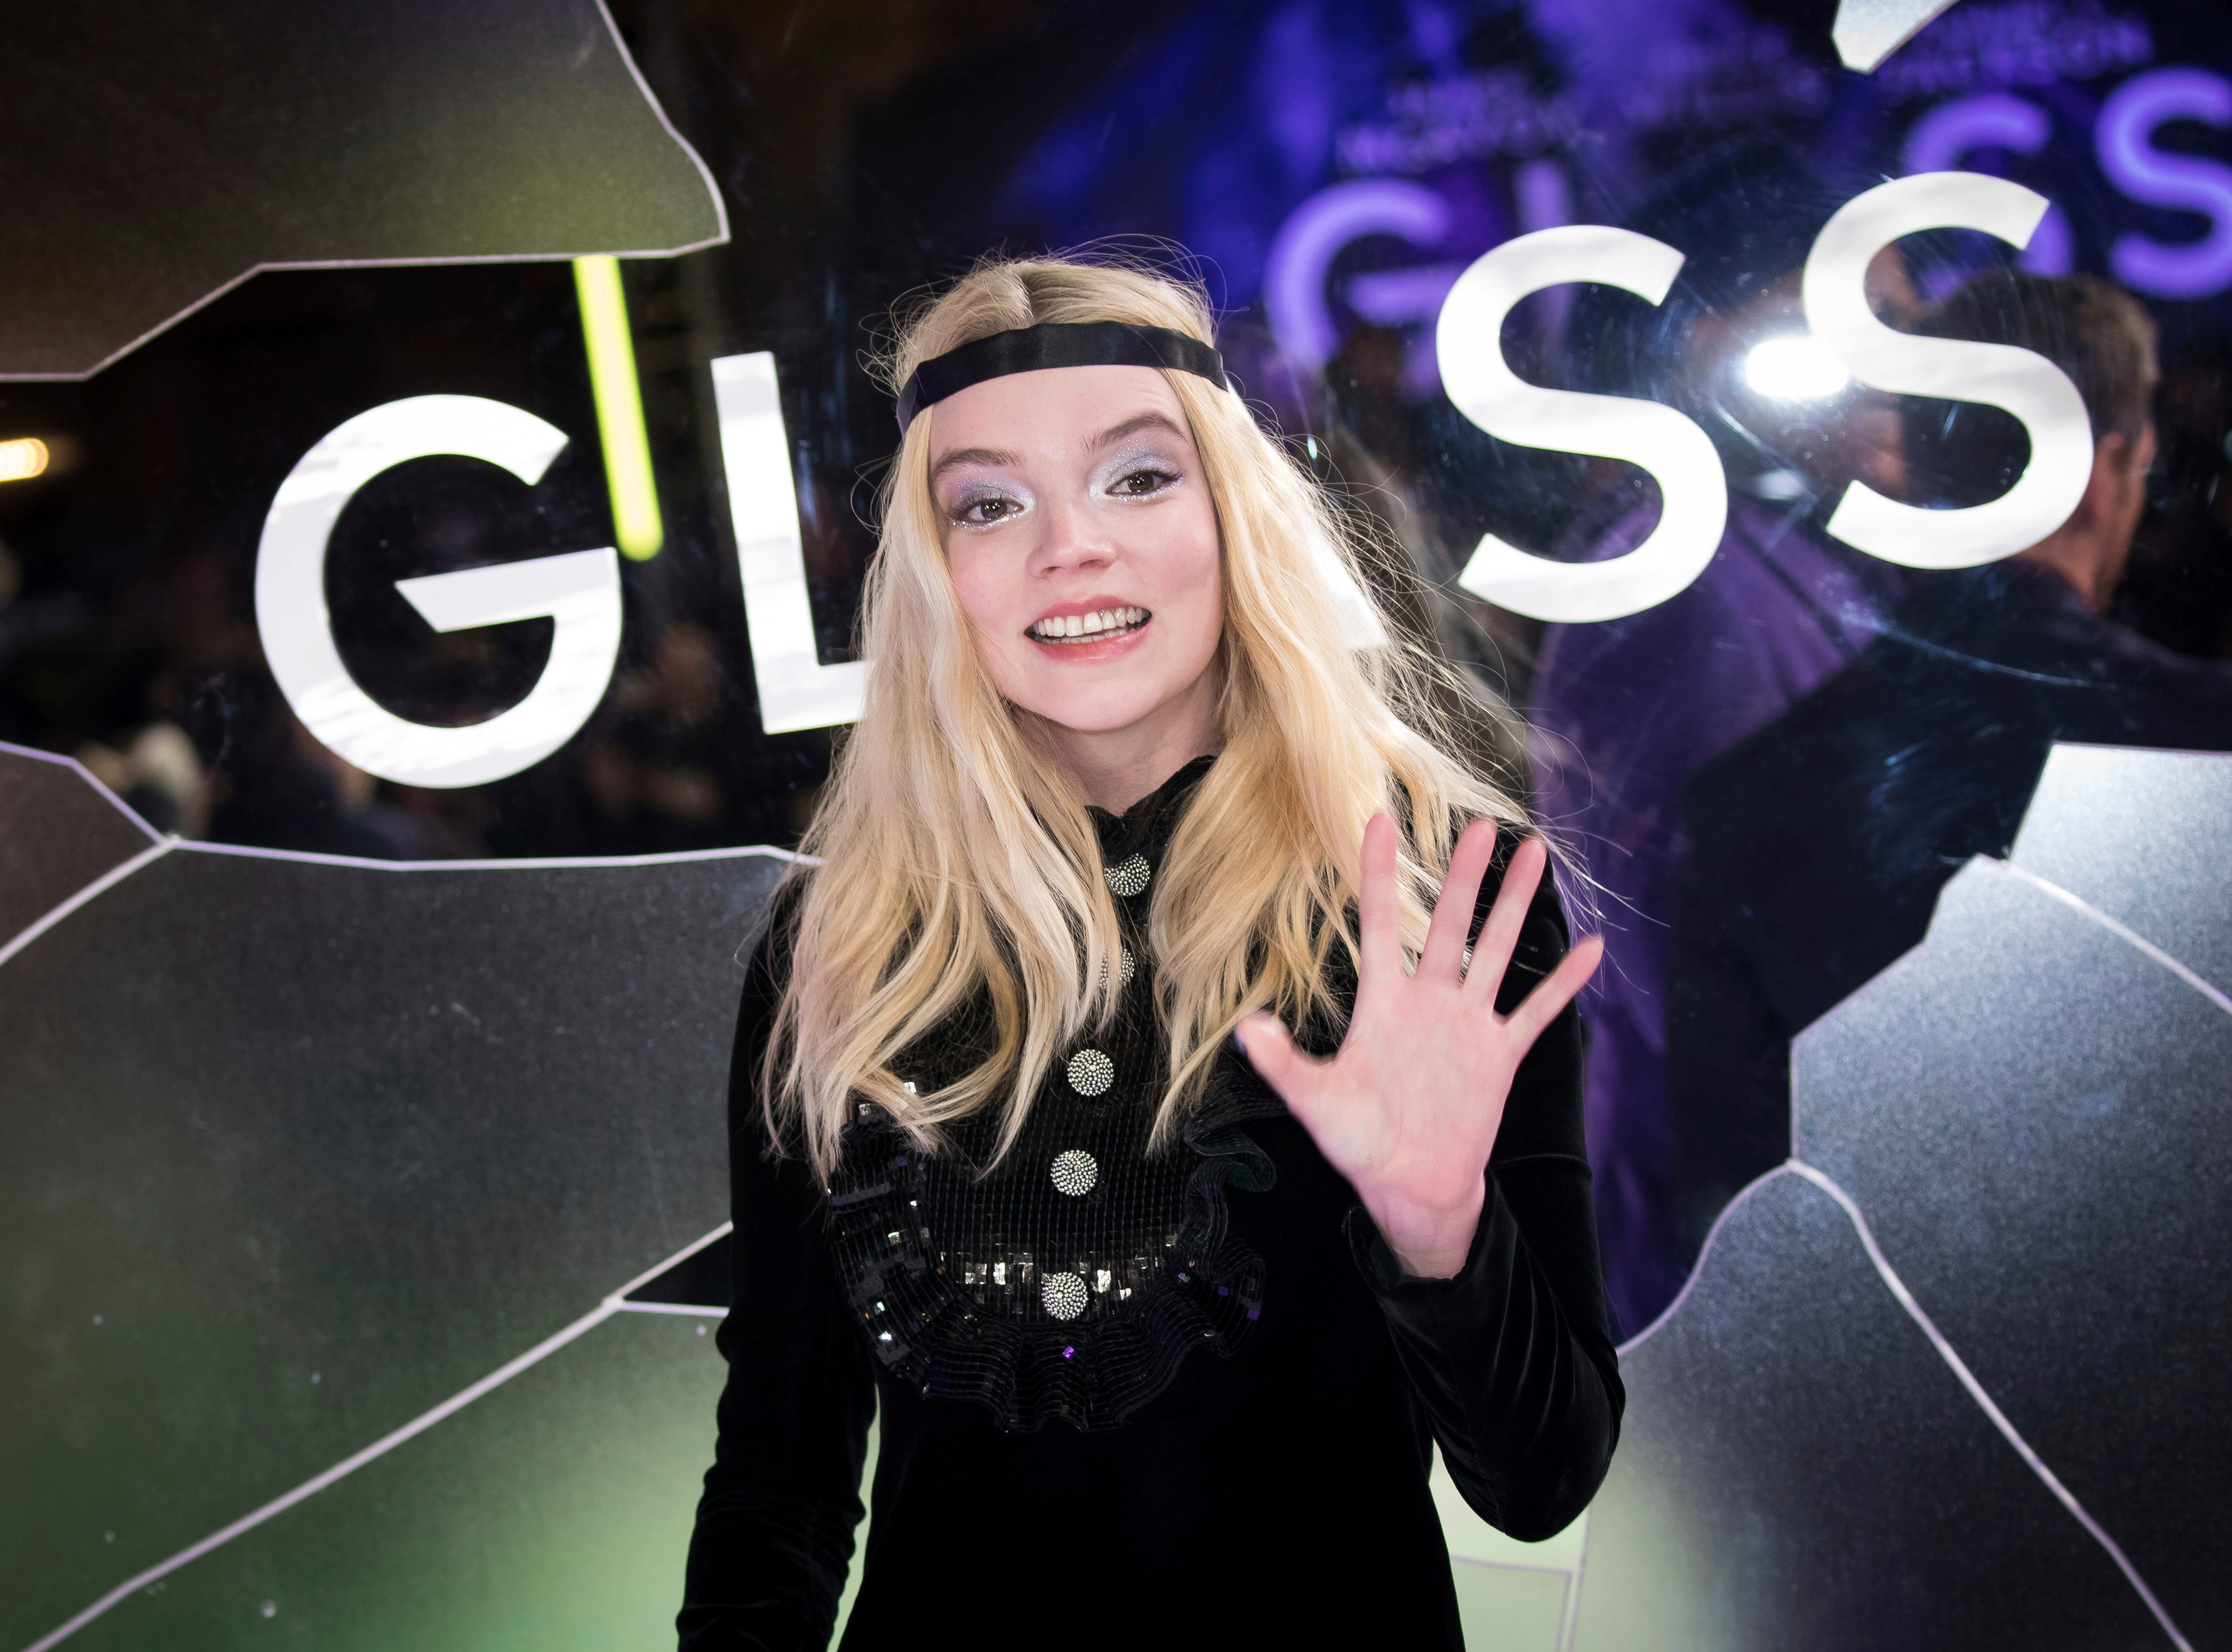 """Actress Anya Taylor-Joy poses for photographers upon arrival at the premiere of the film """"Glass"""" in London, Wednesday, Jan. 9, 2019."""